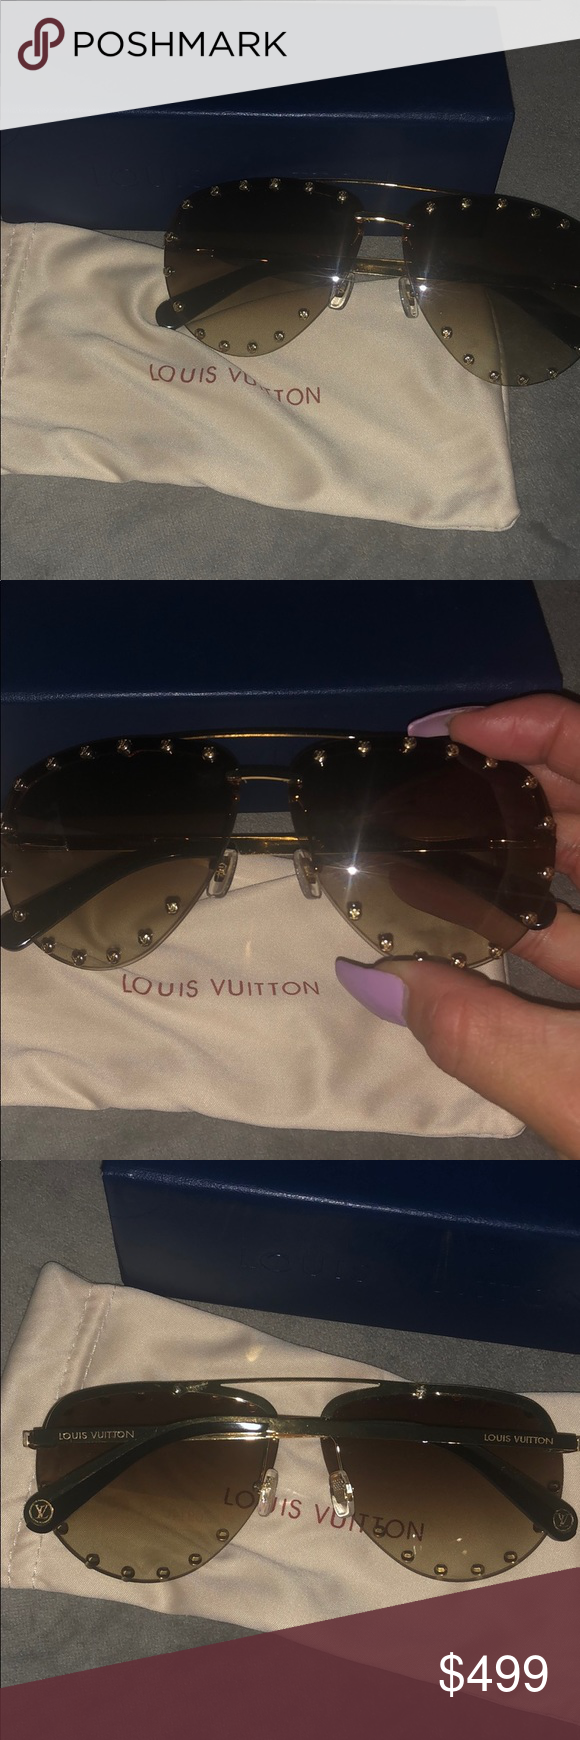 b294a76ba6 Like brand new LOUIS VUITTON STUDDED SUNGLASSES 💯 No Visible scratches  comes with hard case and cloth case. Gold and brown frames. Super cute.